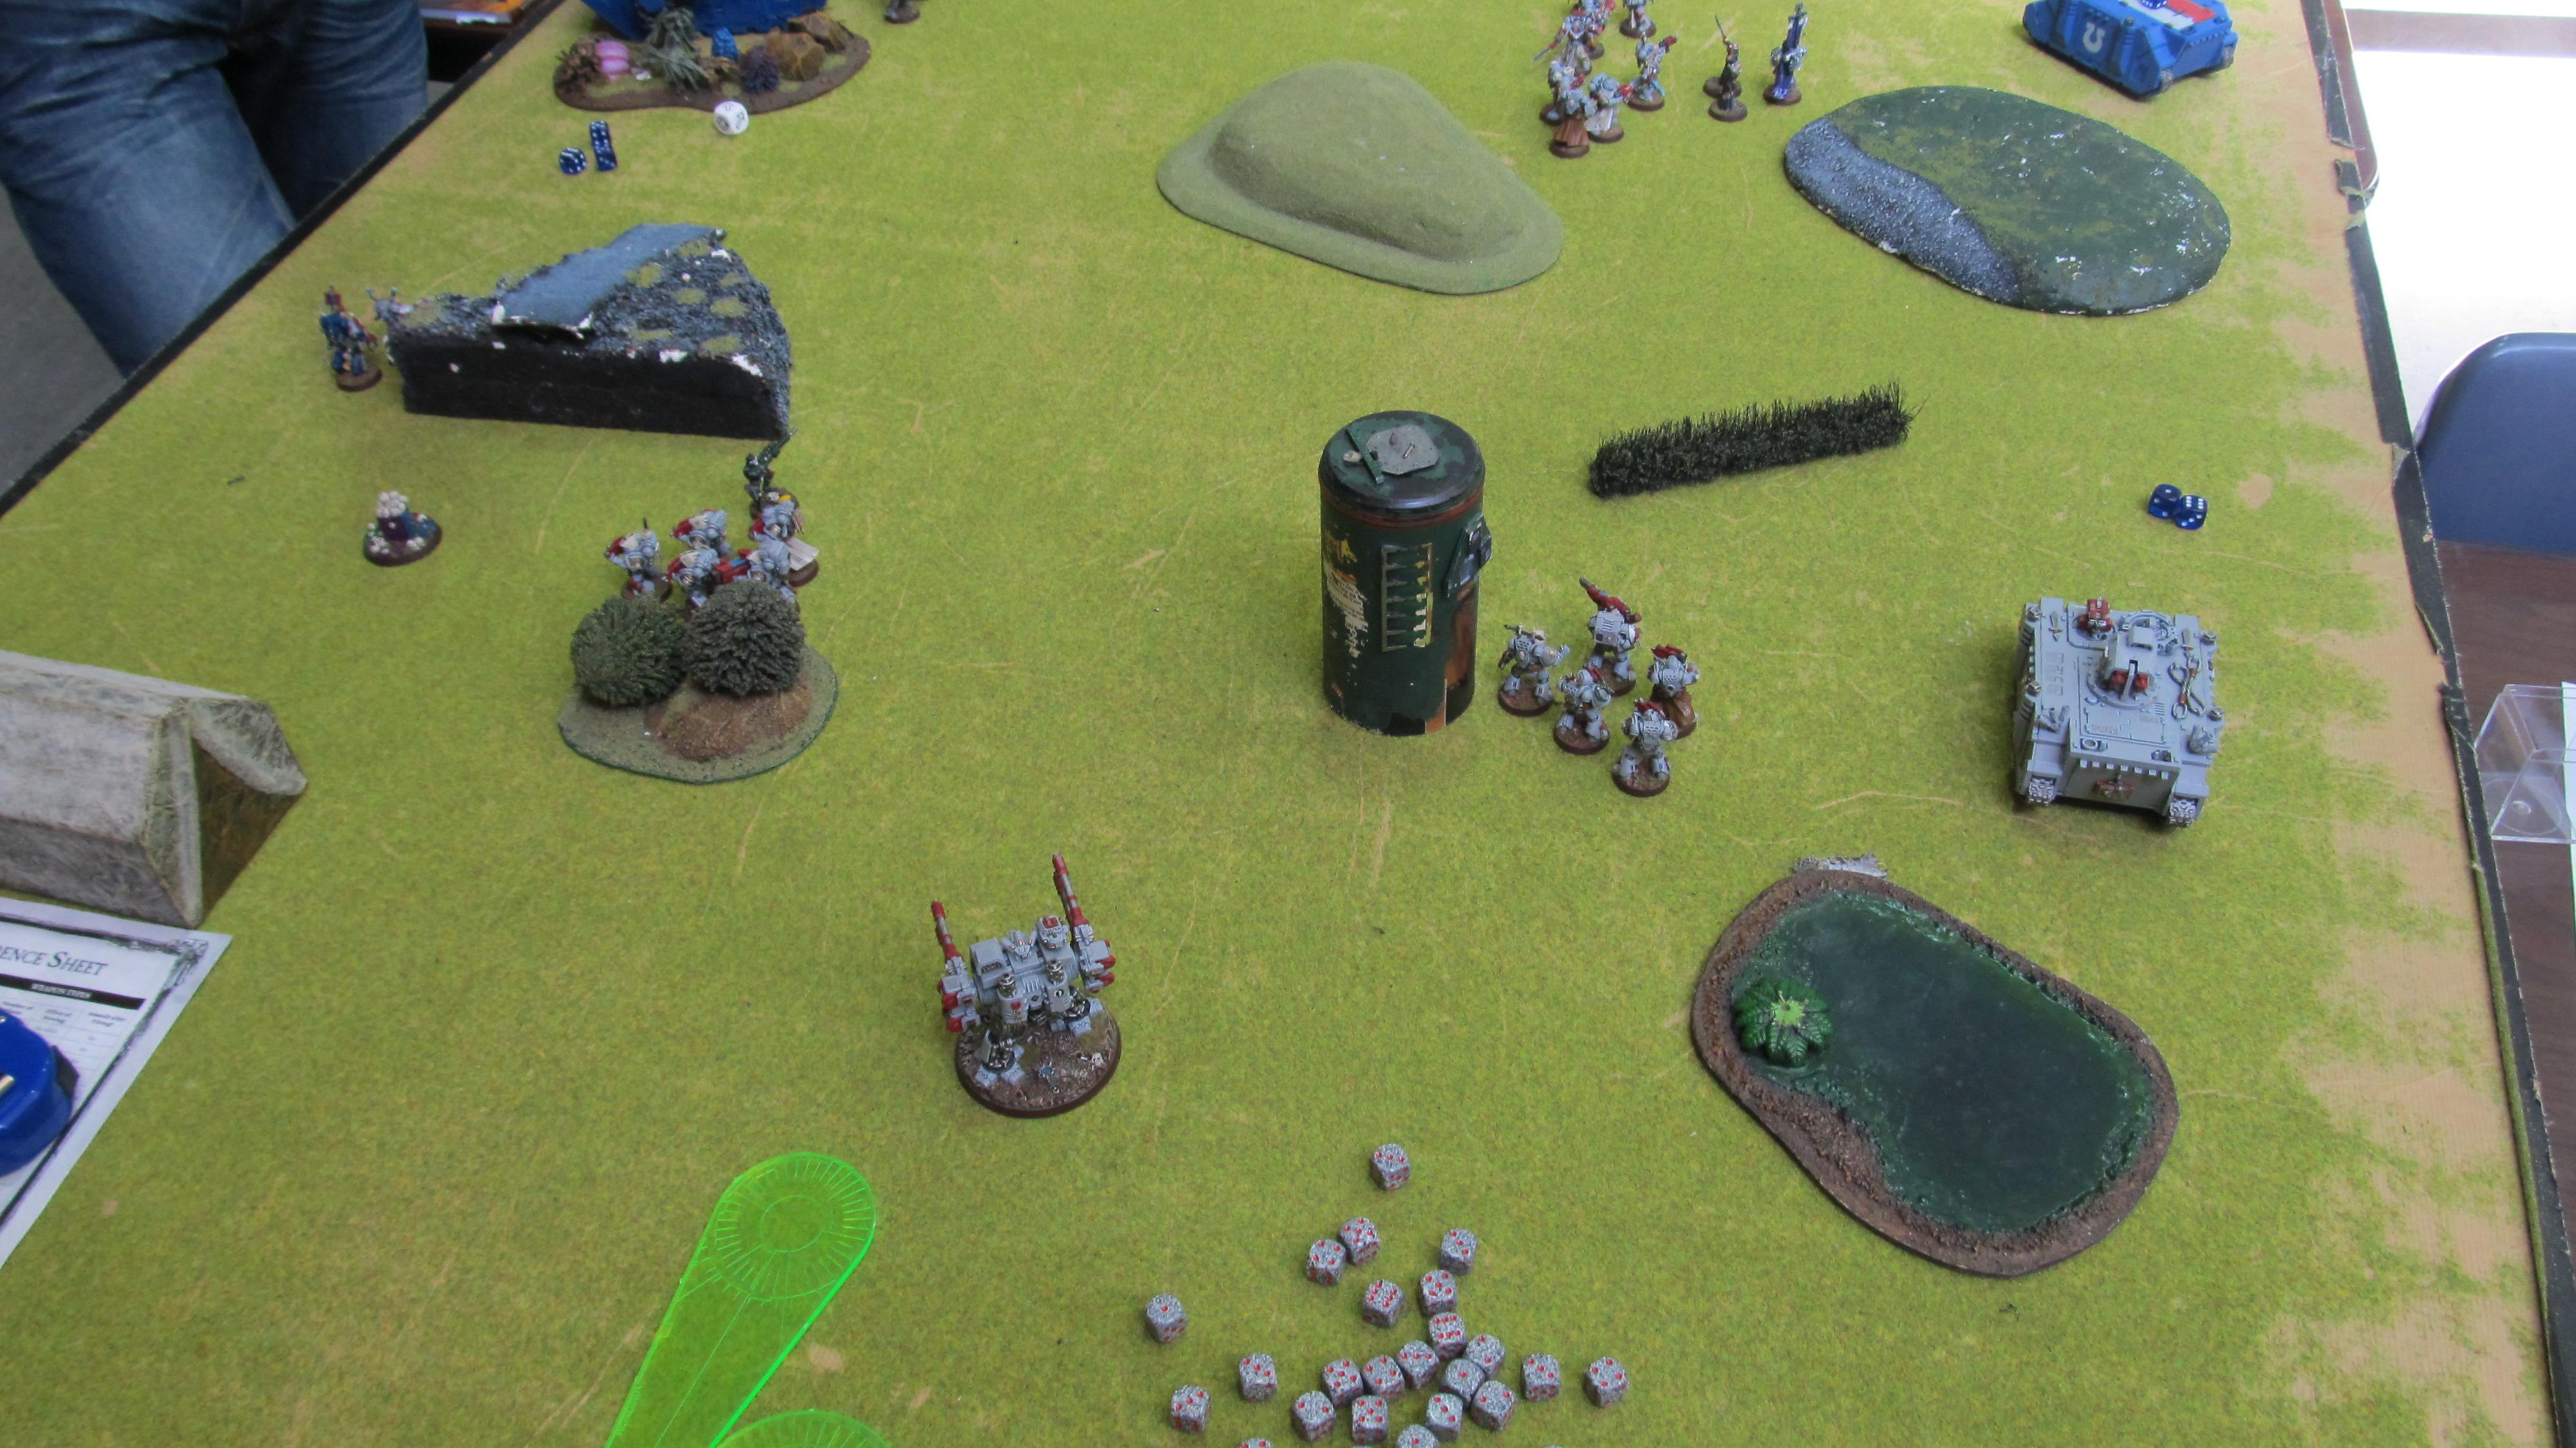 End of Turn 6